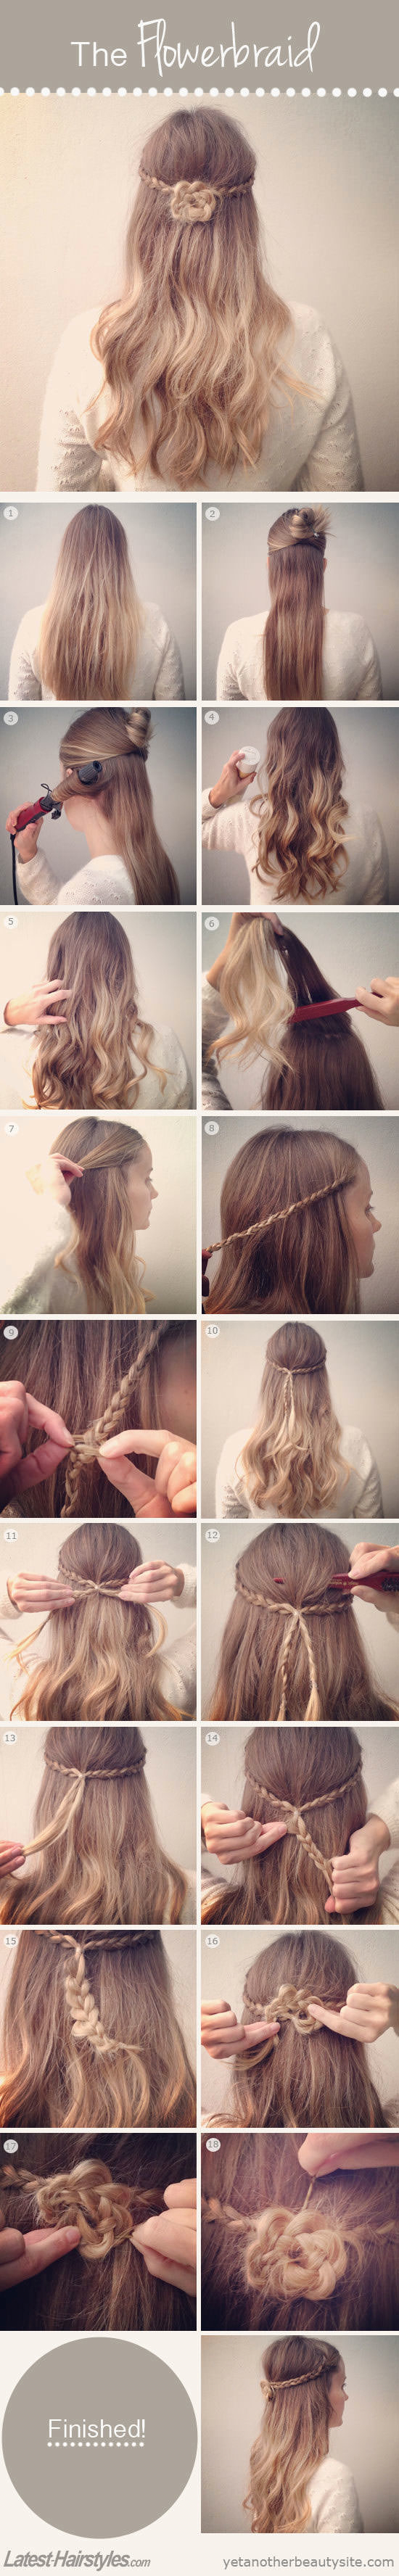 Look amazingly chic how to braid your hair into a pretty flower